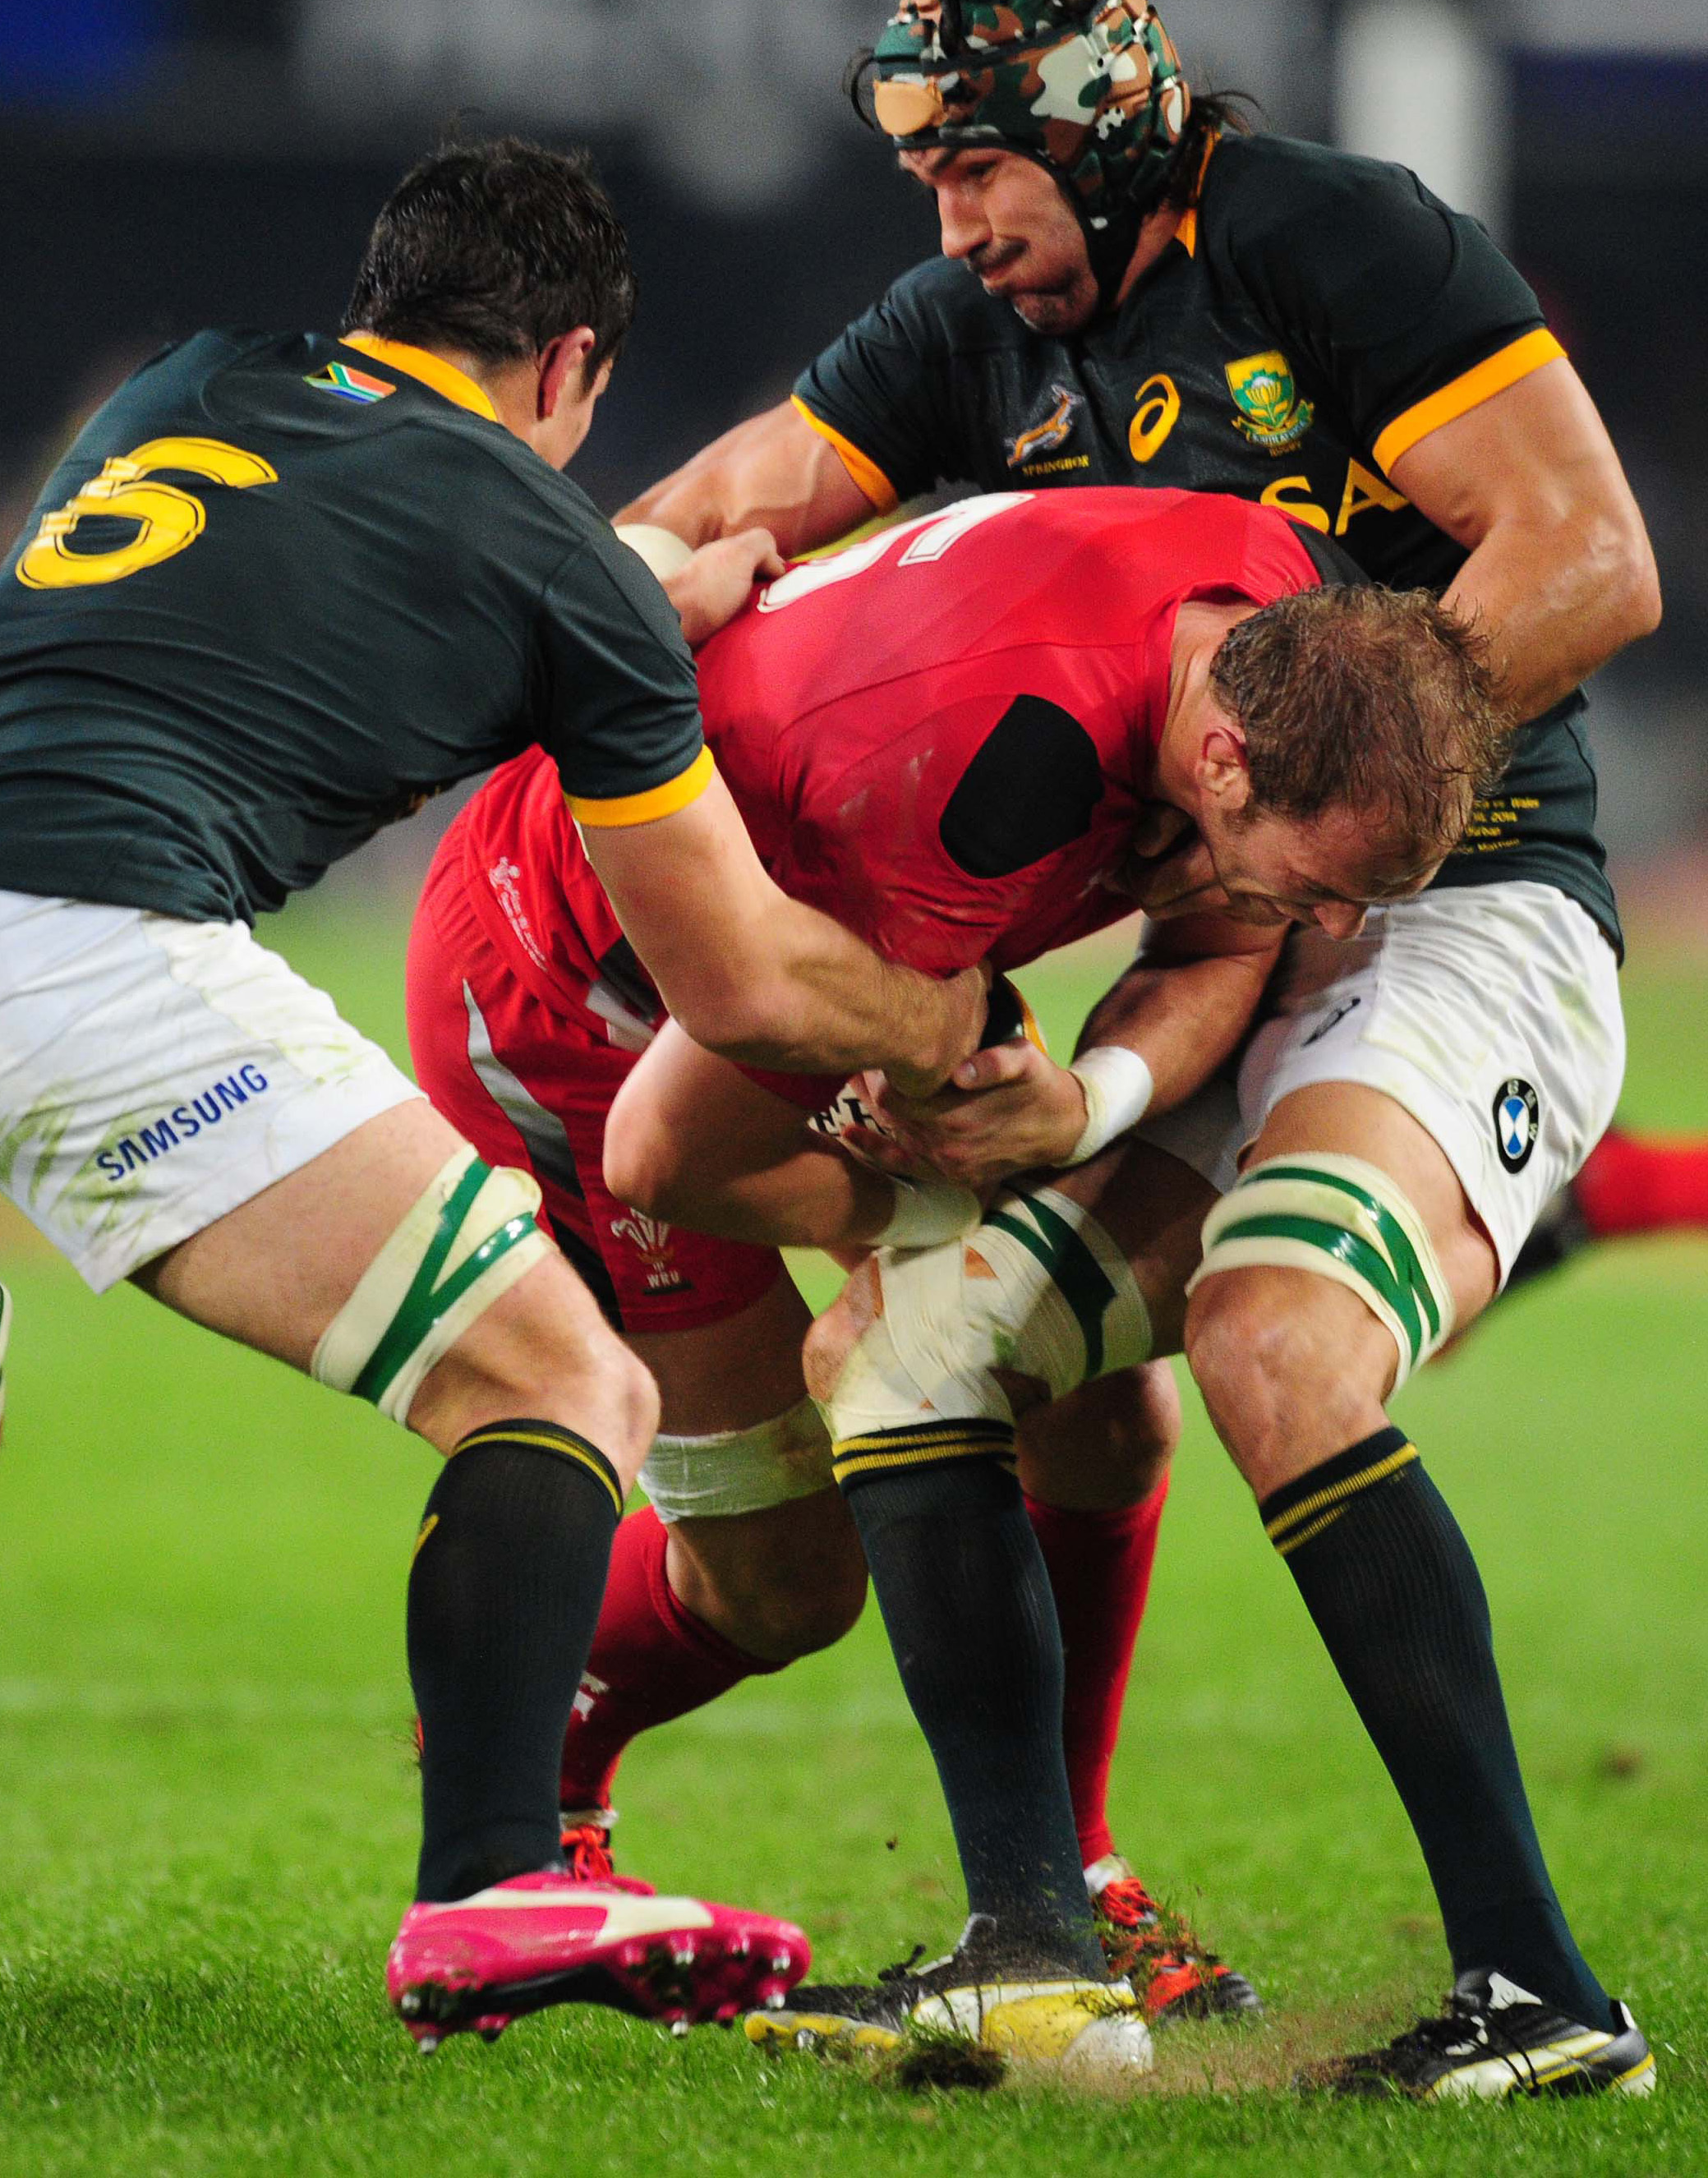 Wales' Alun-Wyn Jones, center, is tackled by South Africa's Francois Louw, left, and Victor Matfield, right, during their Rugby test match in Durban, South Africa, Saturday, June 14, 2014.